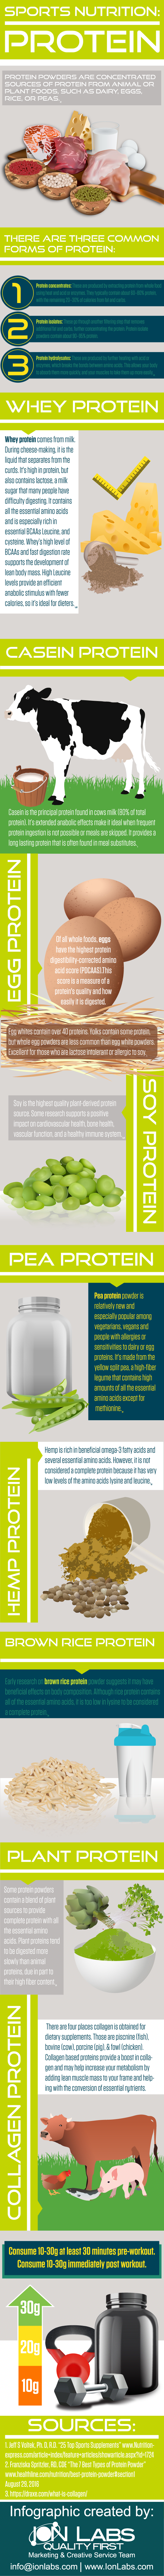 Most Popular Protein Supplements in Sports Nutrition